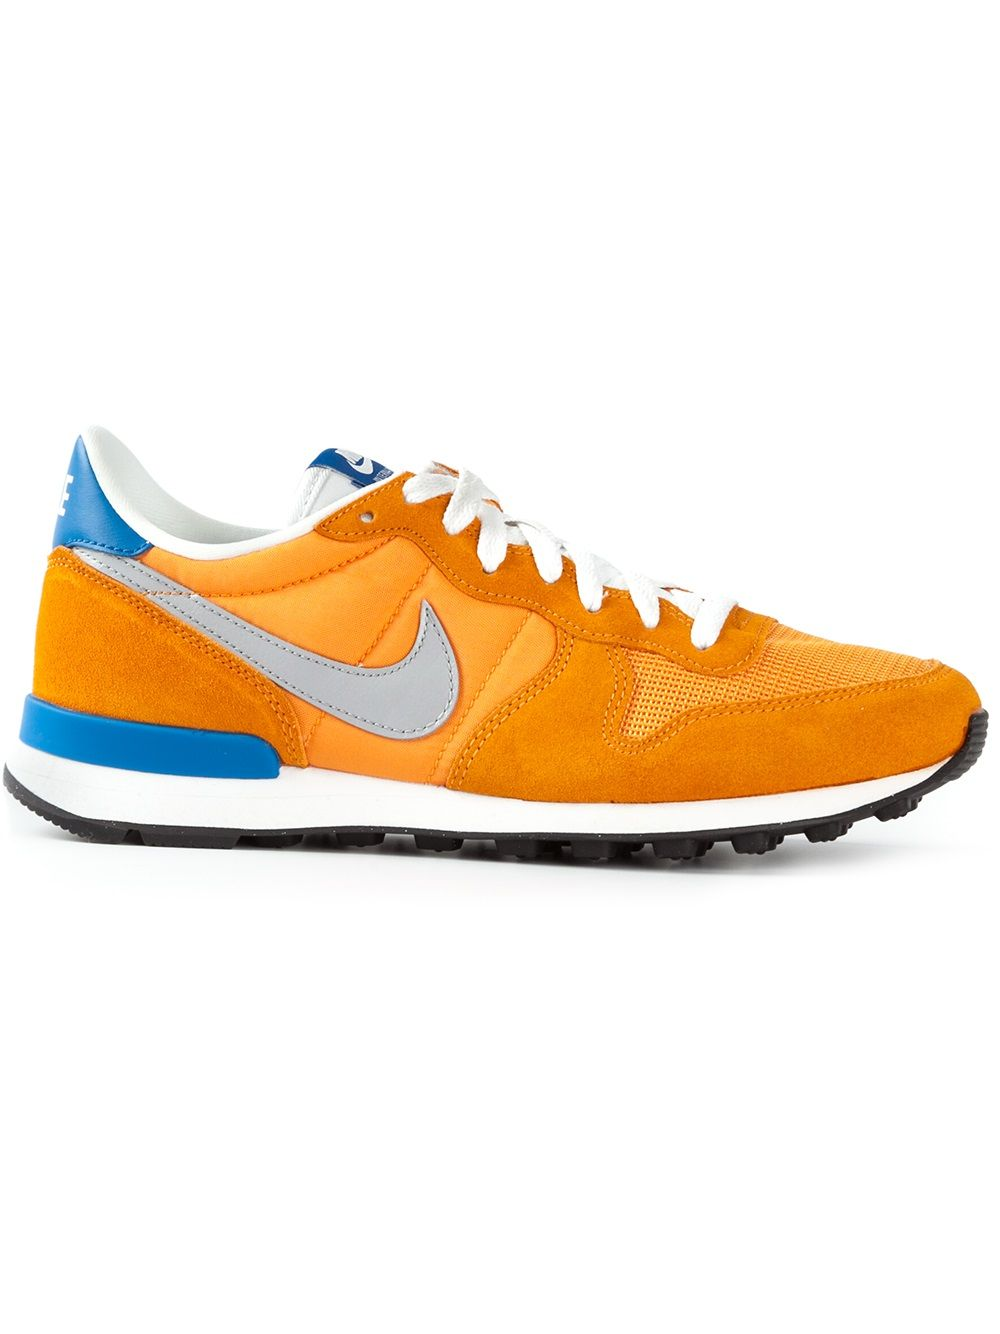 Nike - bright orange Internationalist sneakers  #nike #Nike #nikesneakers #mentrainers #jofré